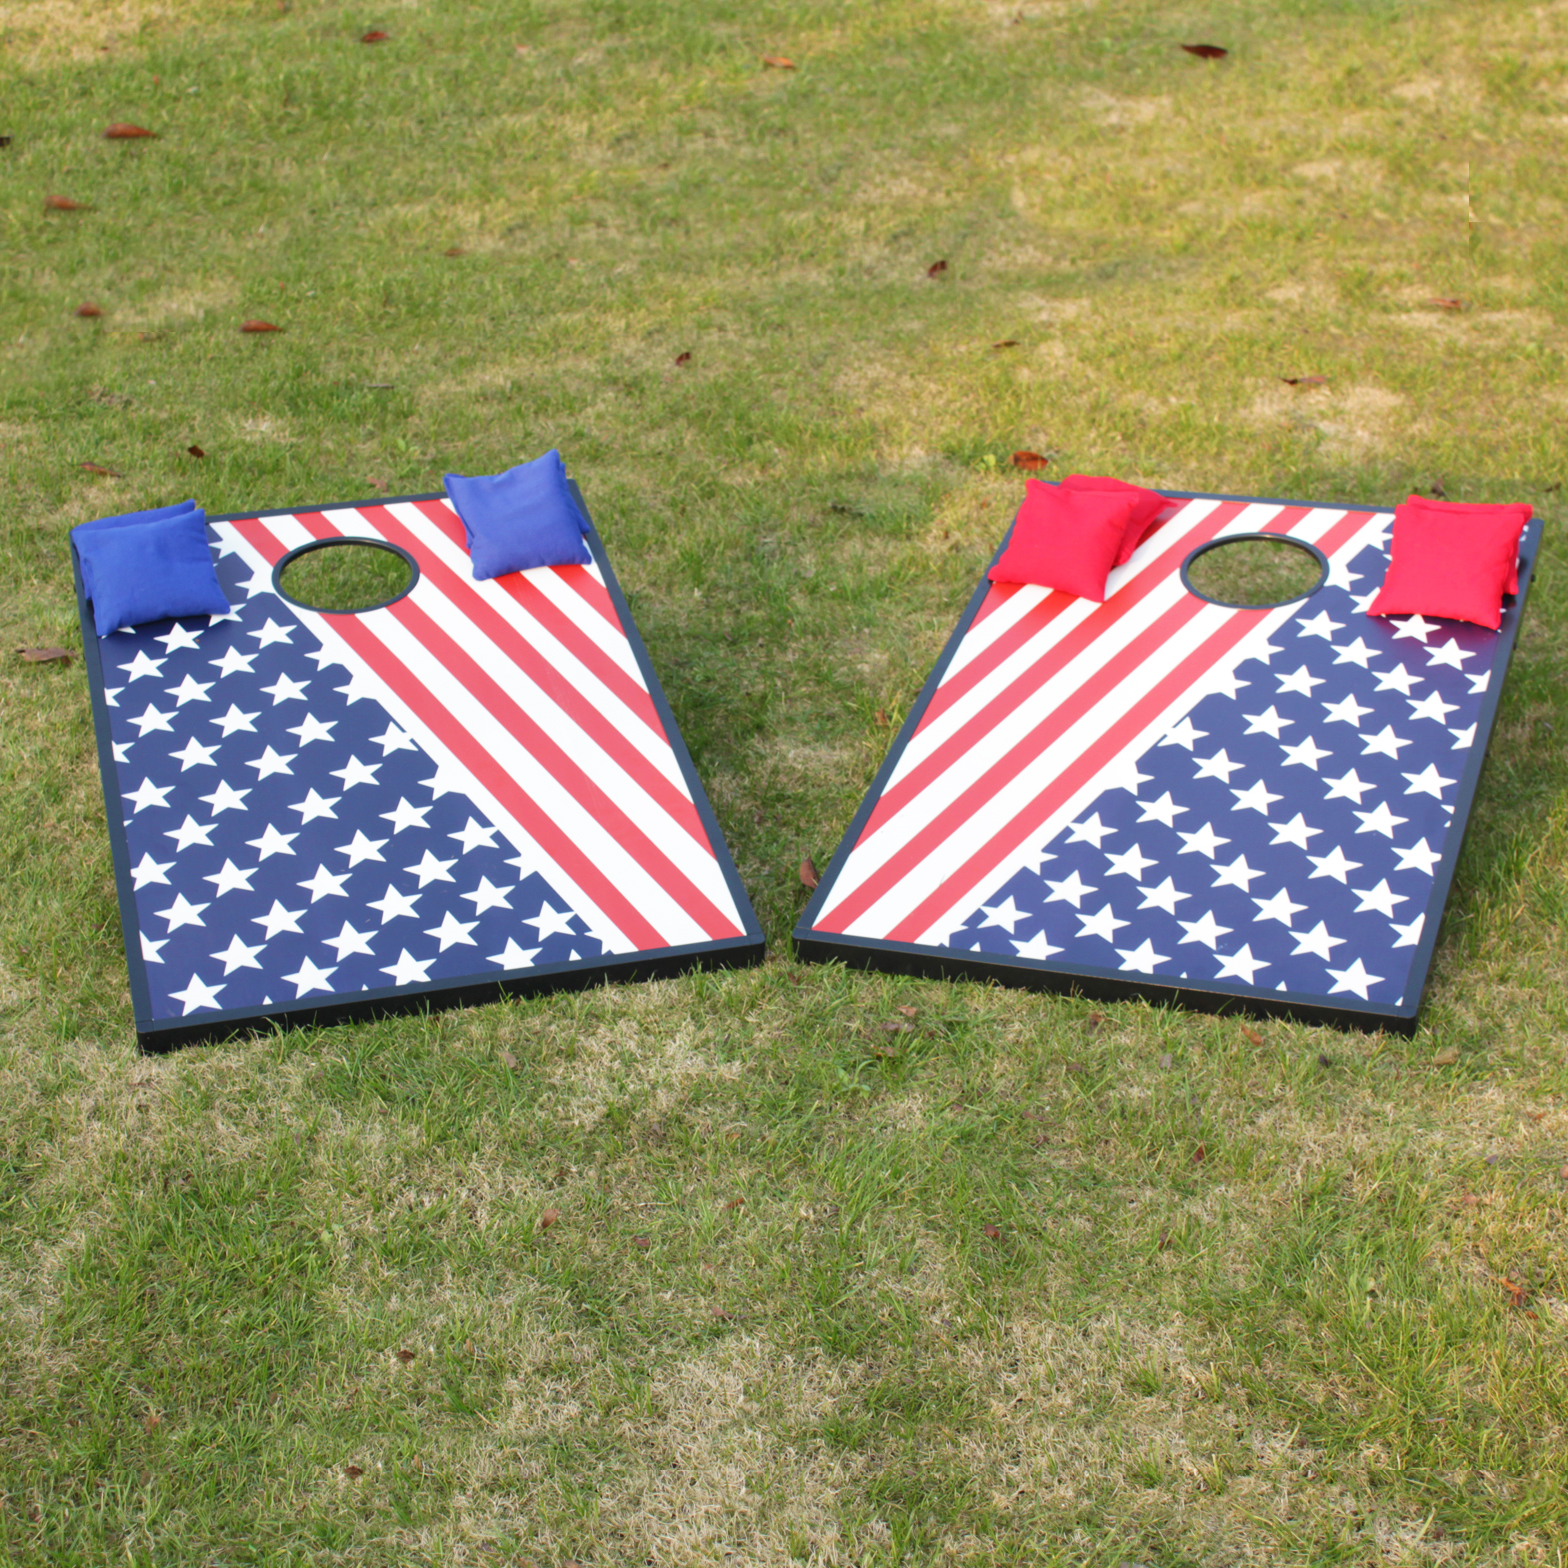 Cornhole Beanbag Toss Game Great for Outside Yard Kids Games Tic Tac Toe and Cornhole... by Zhejiang Phelps Lighting Technololgy Co., Ltd.